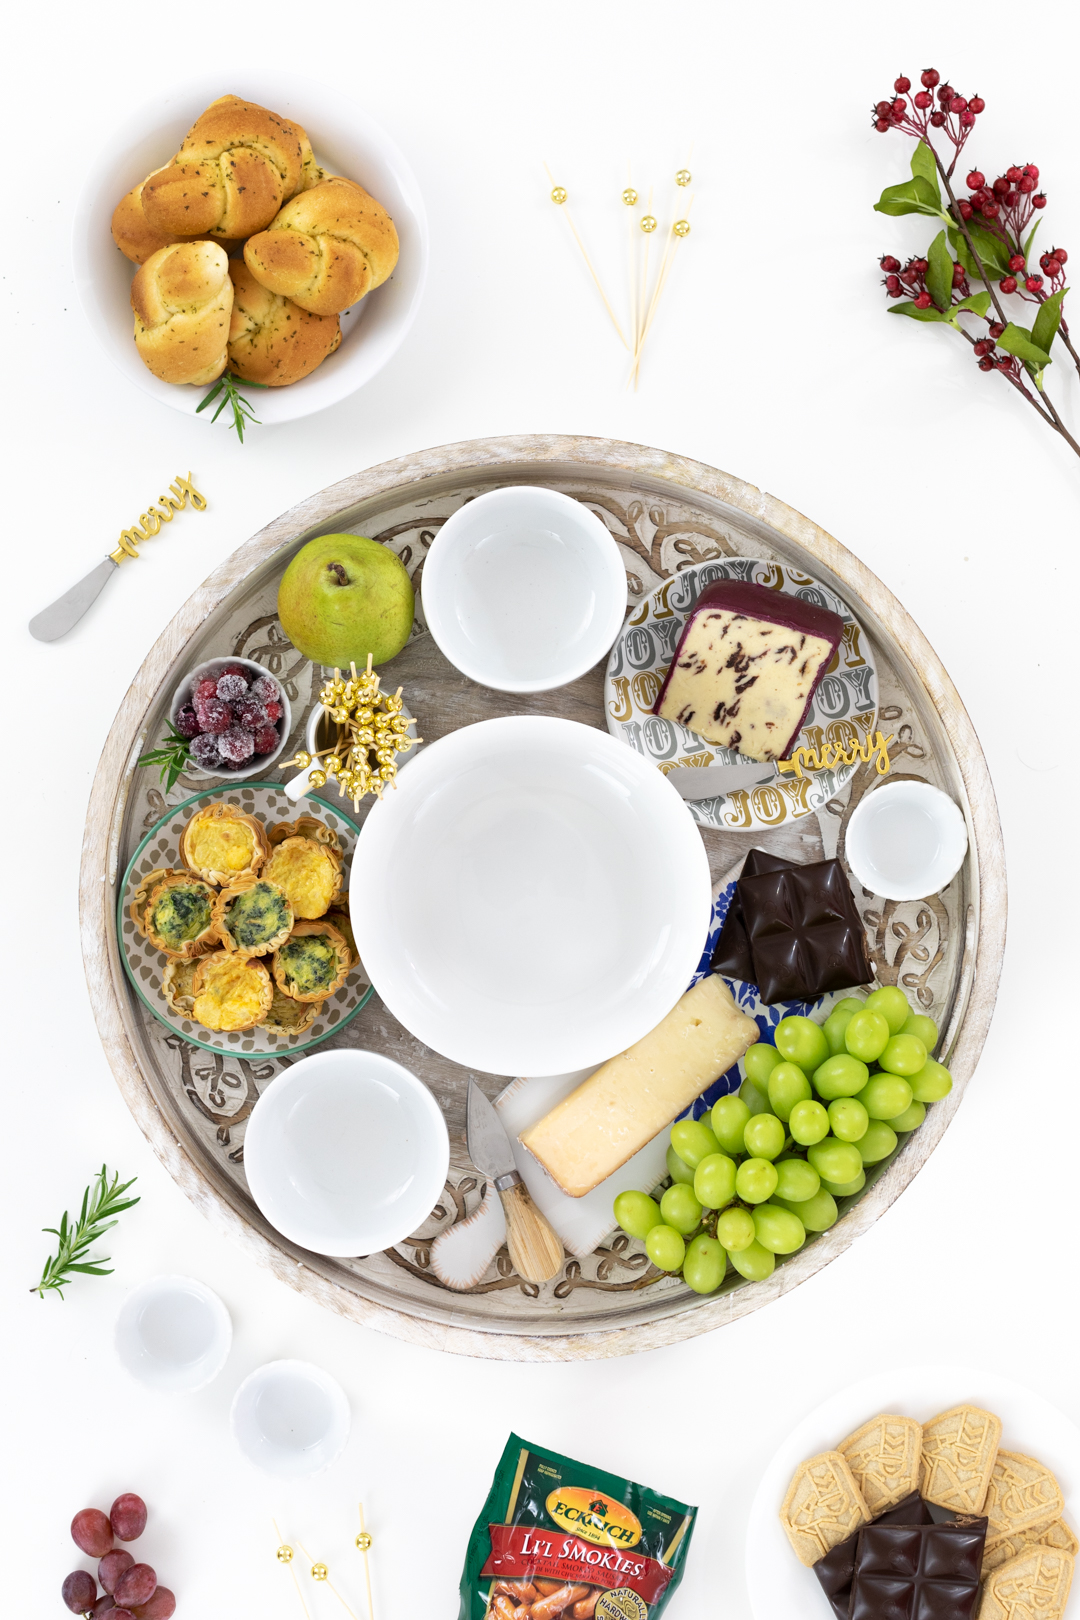 visual for setting up a charcuterie board